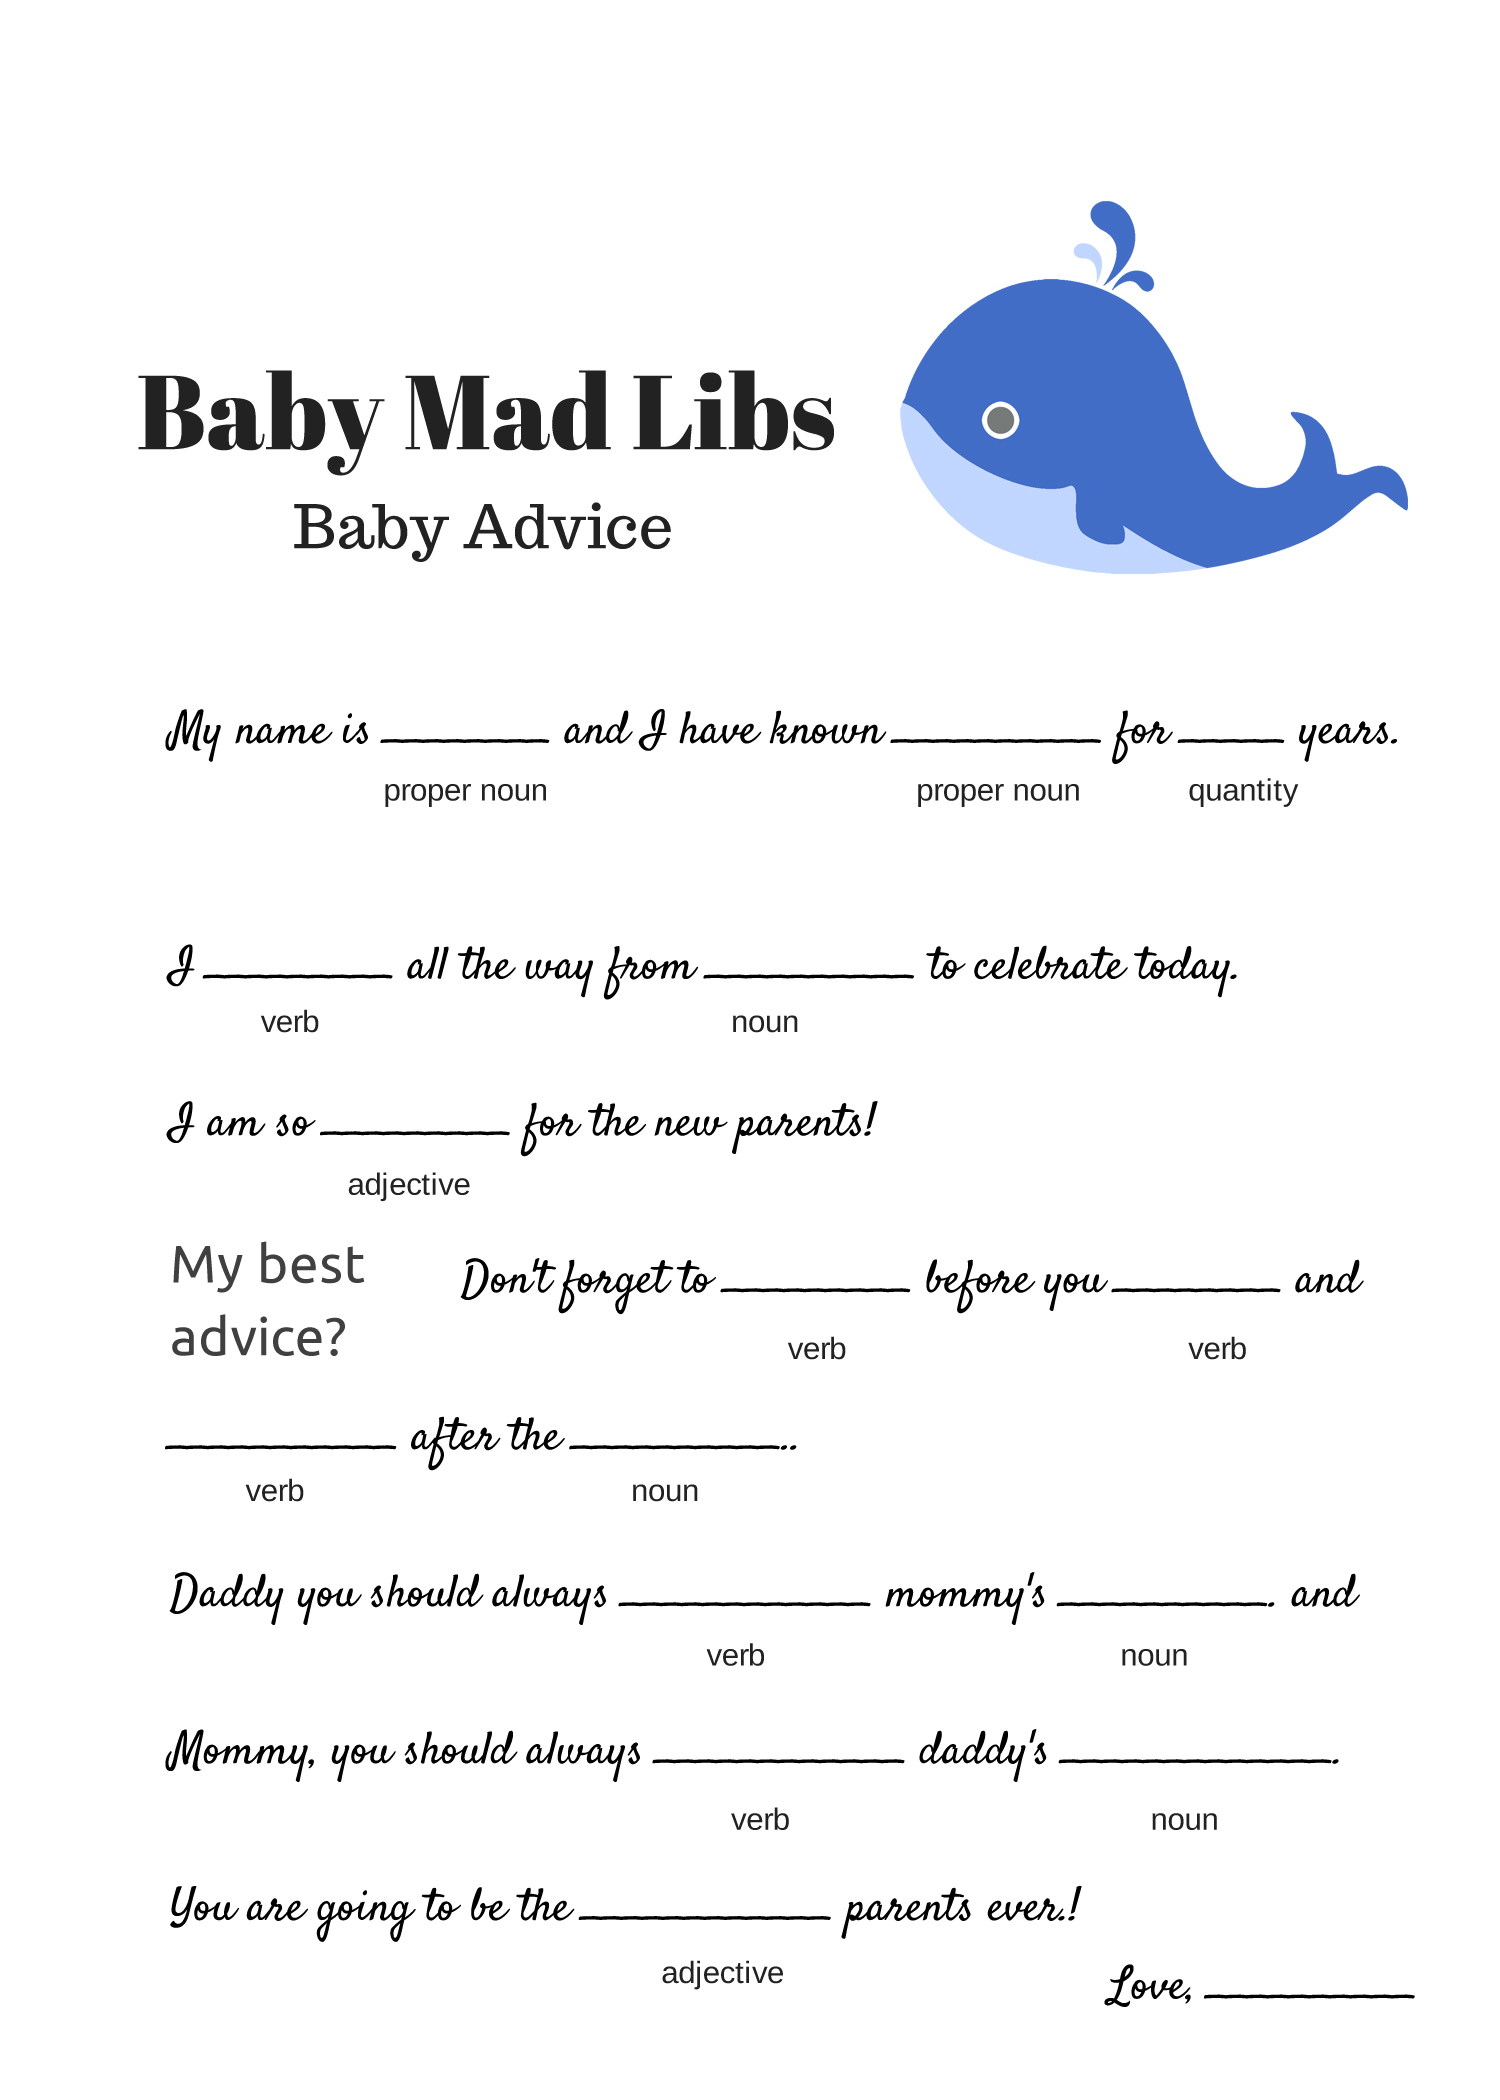 FREE Baby Mad Libs Game Baby Advice Baby Shower Ideas Themes